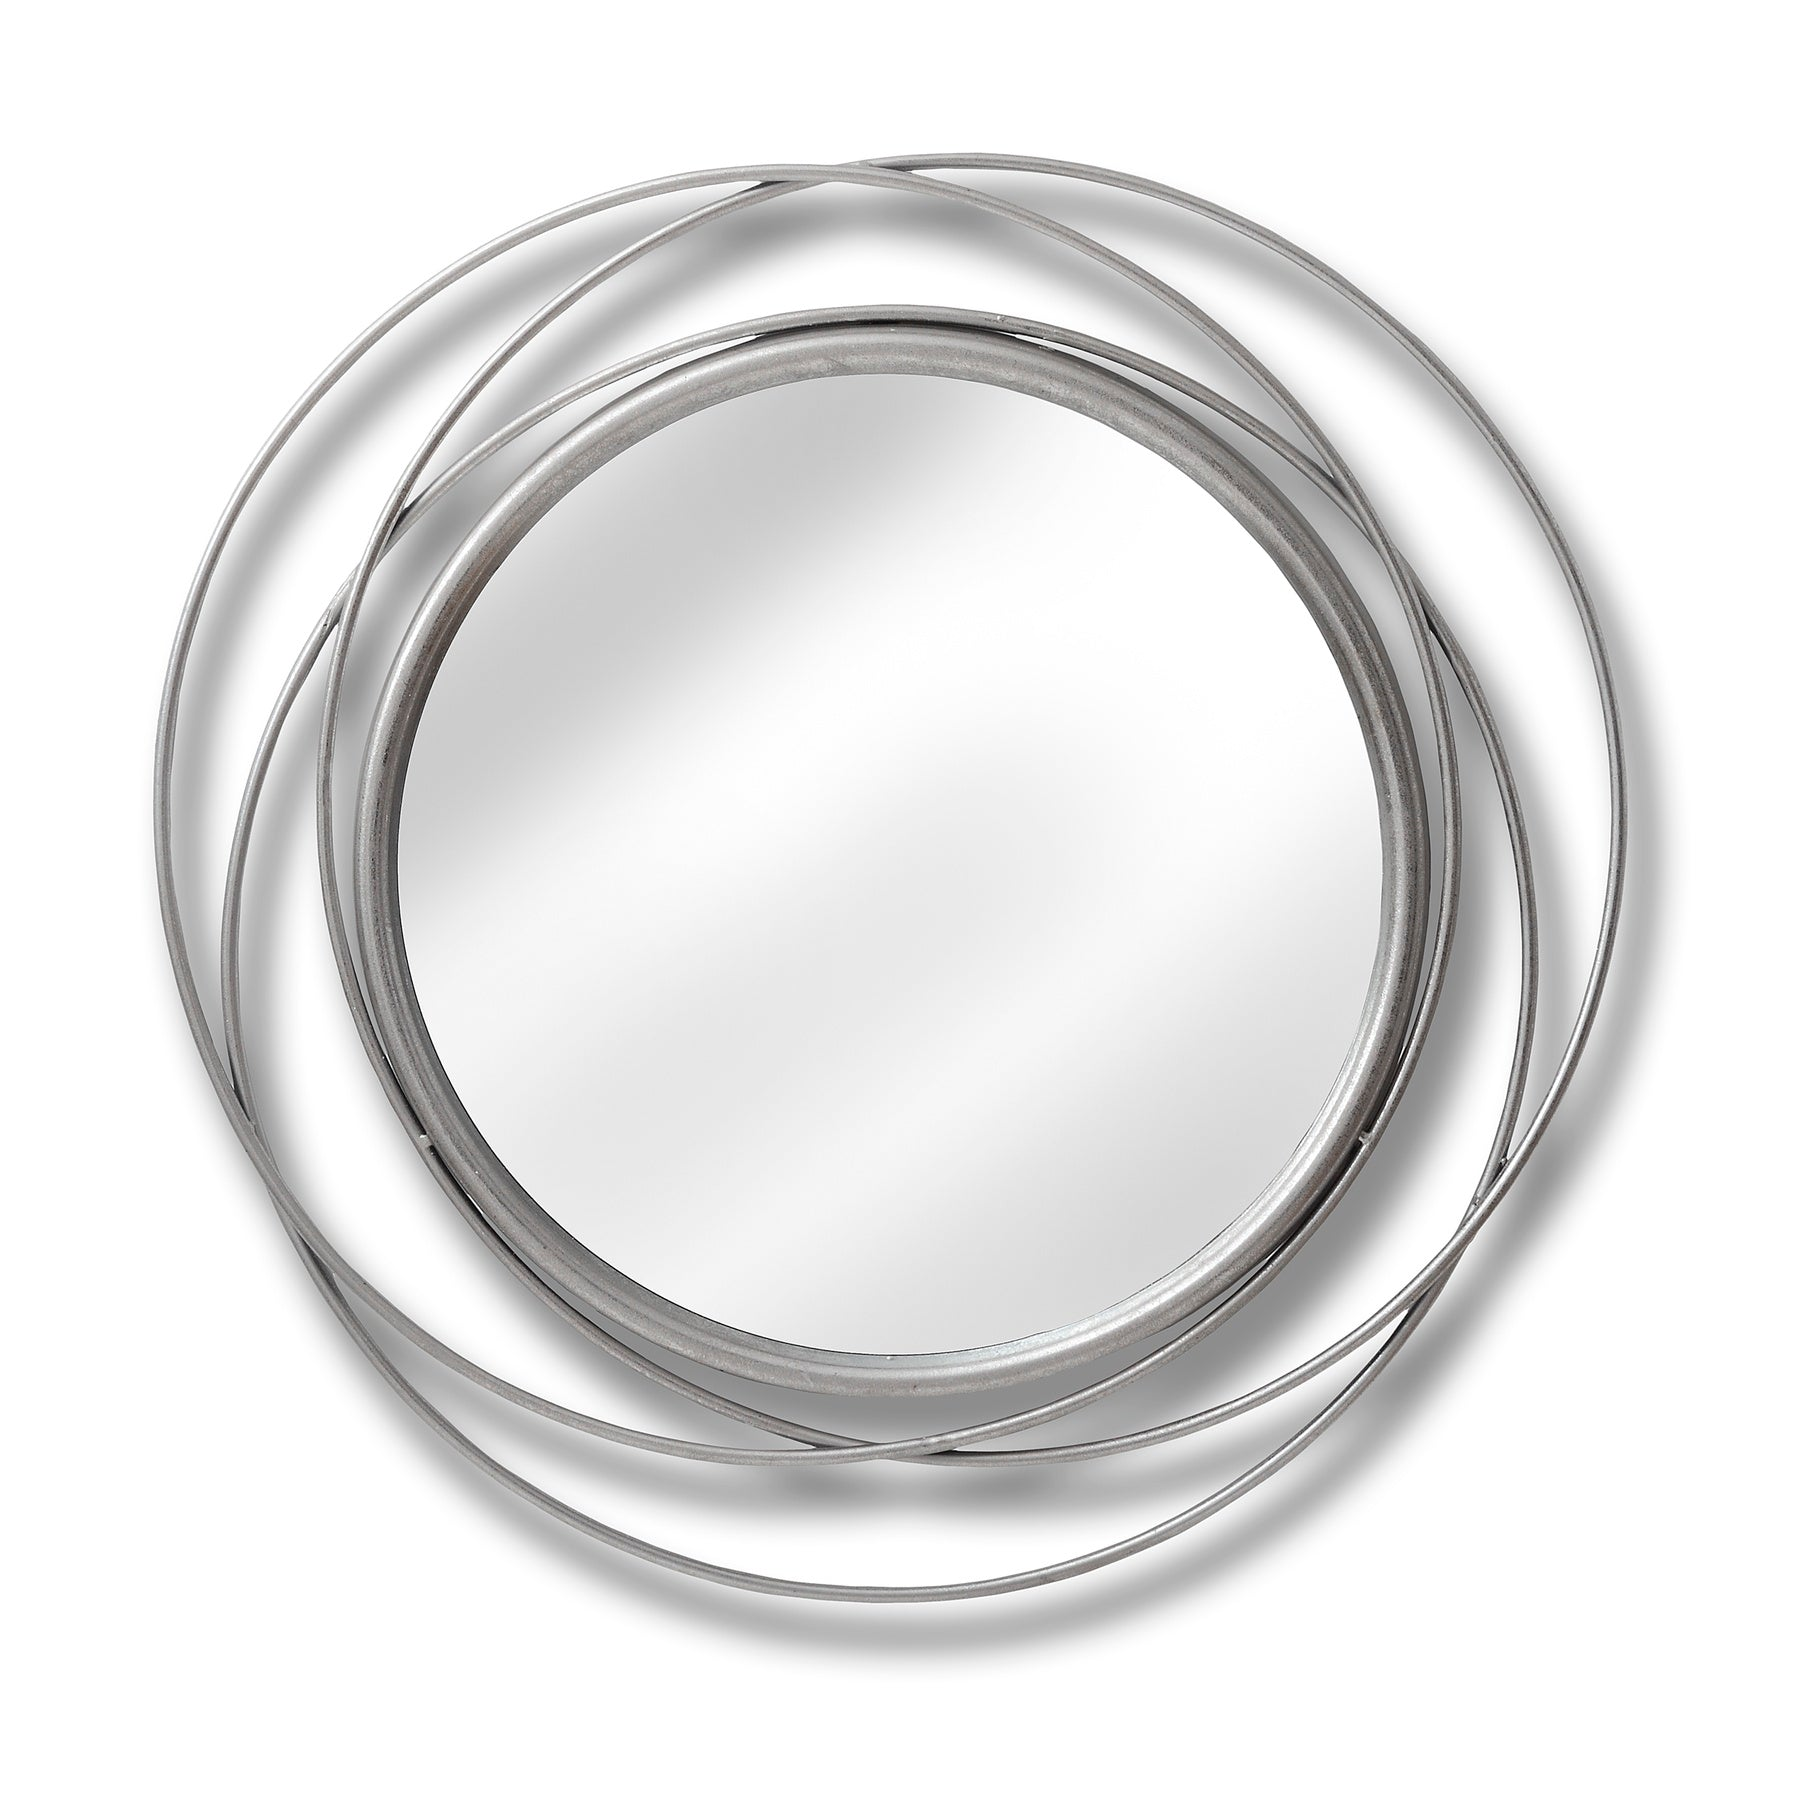 Silver Circled Wall Art Mirror